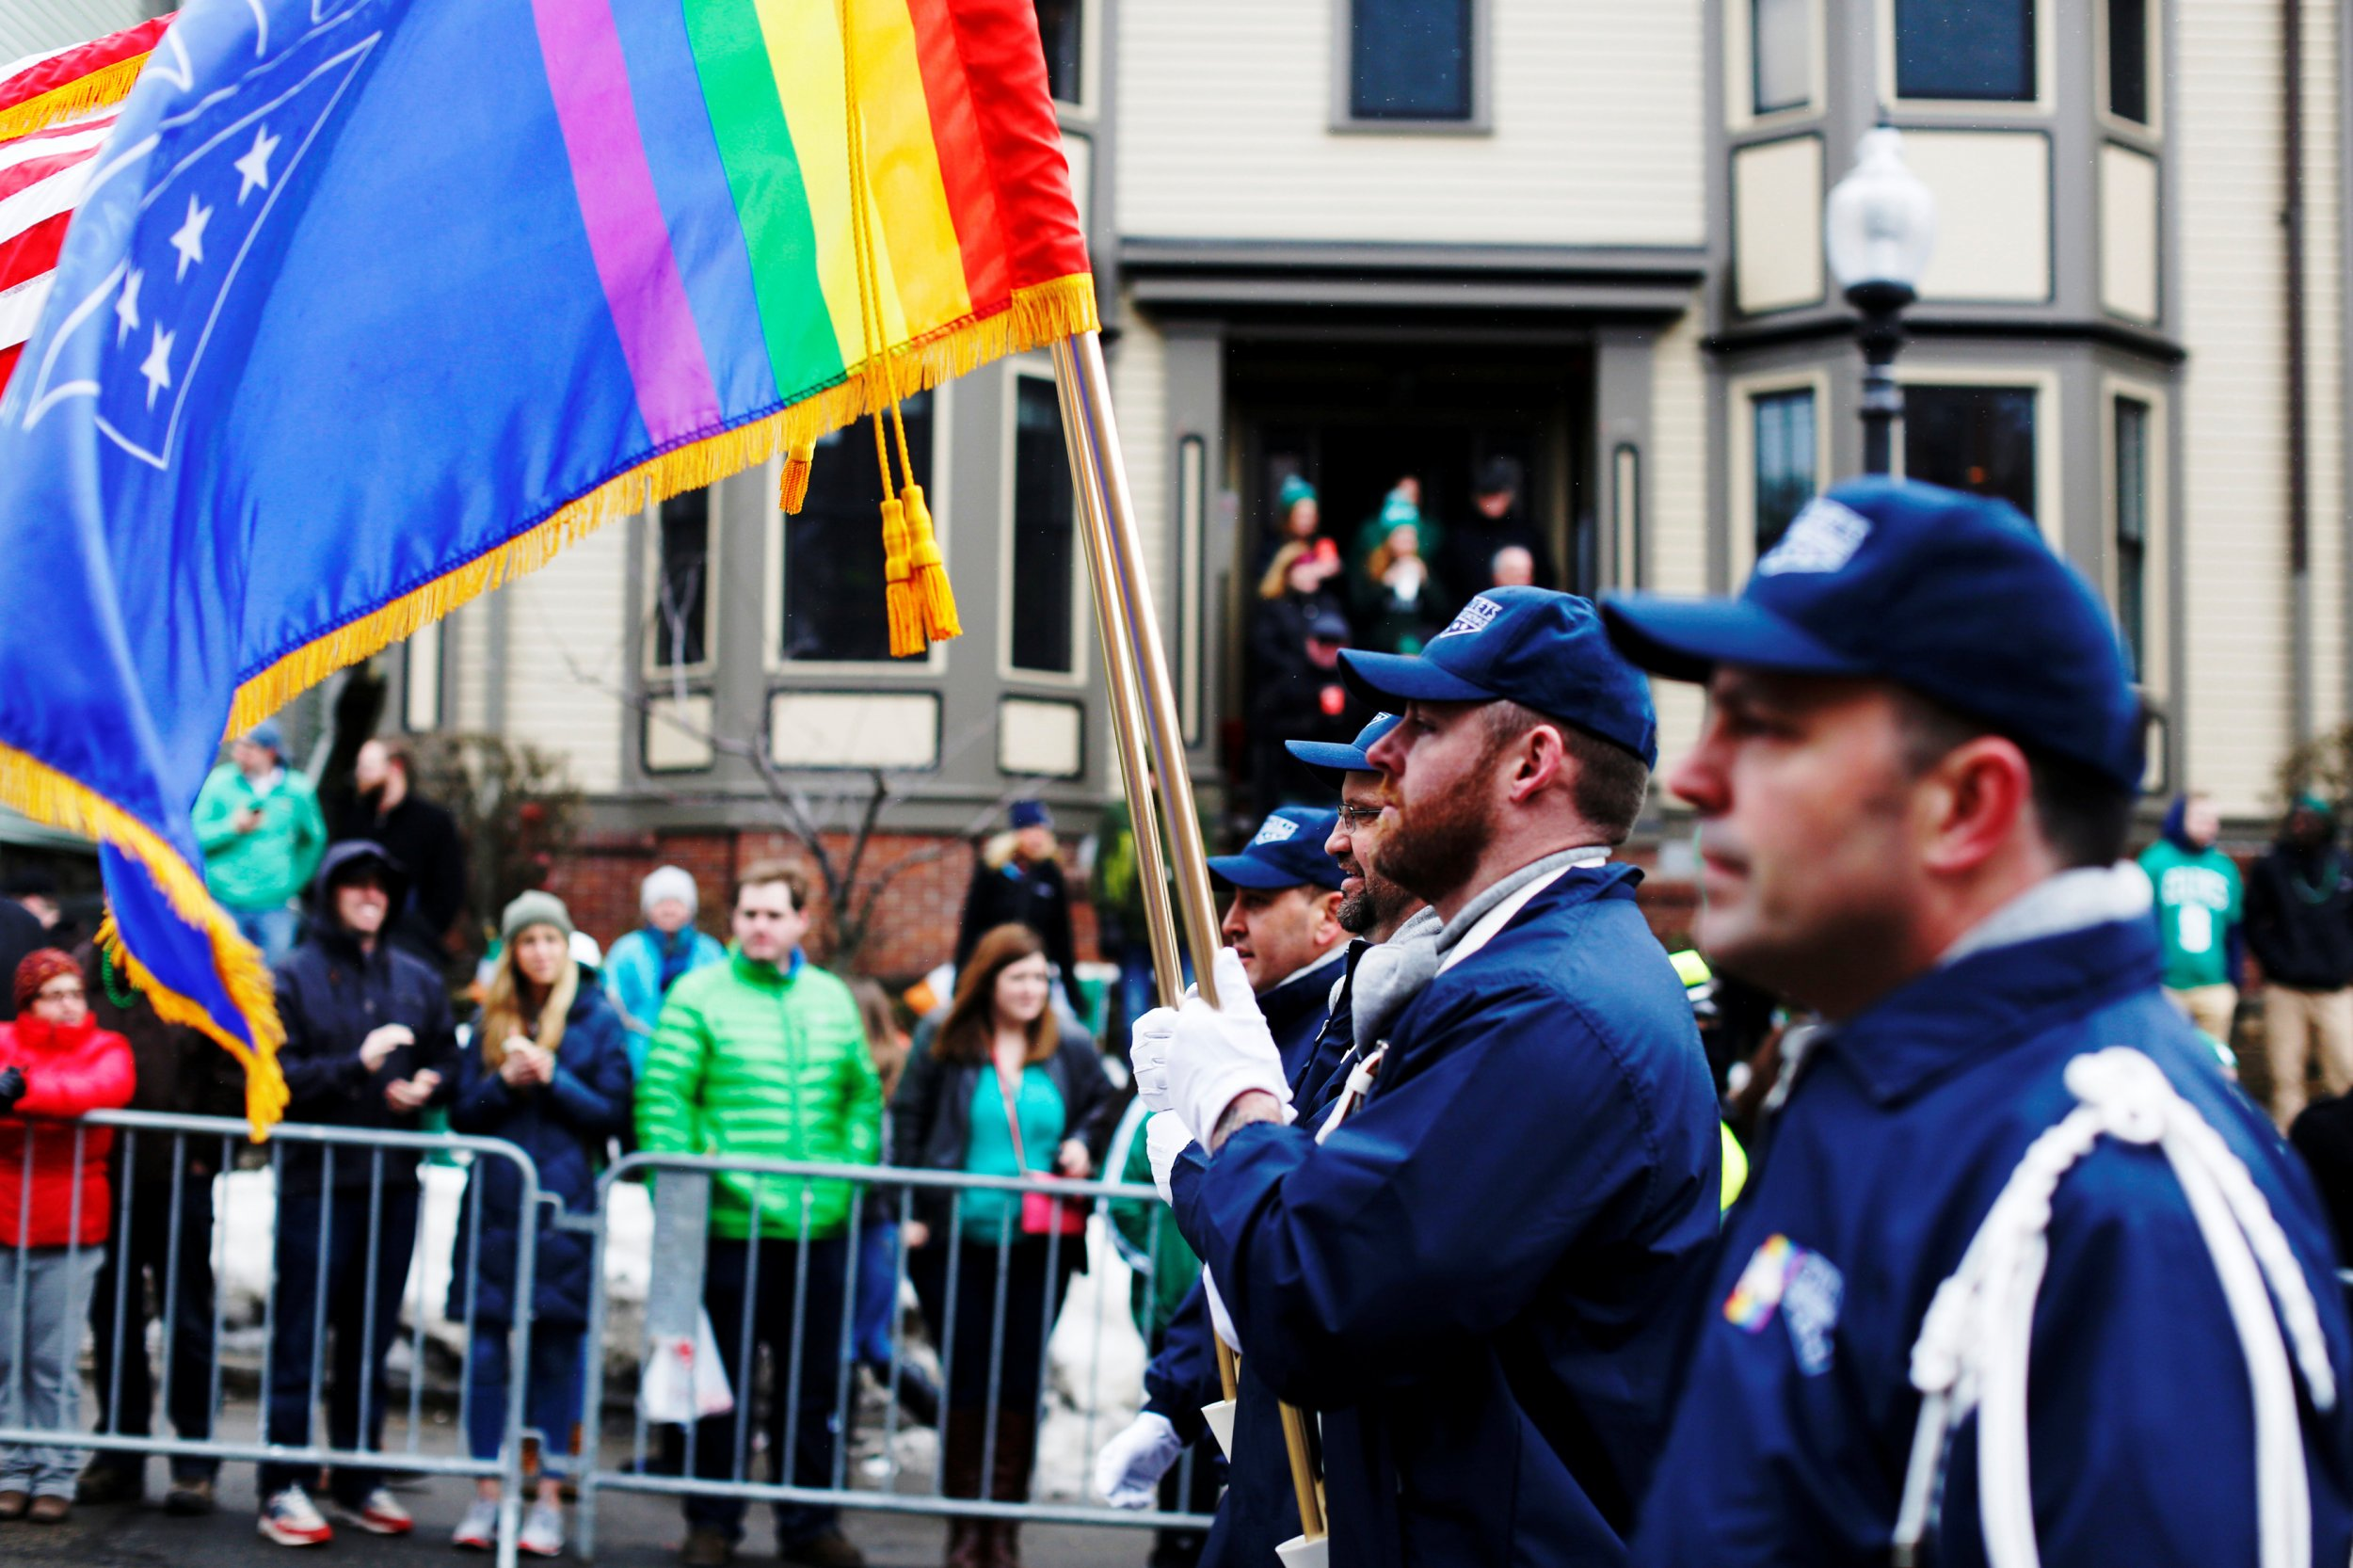 States that allow gay marriages conner bradley and tyler bolt are in - 4 10